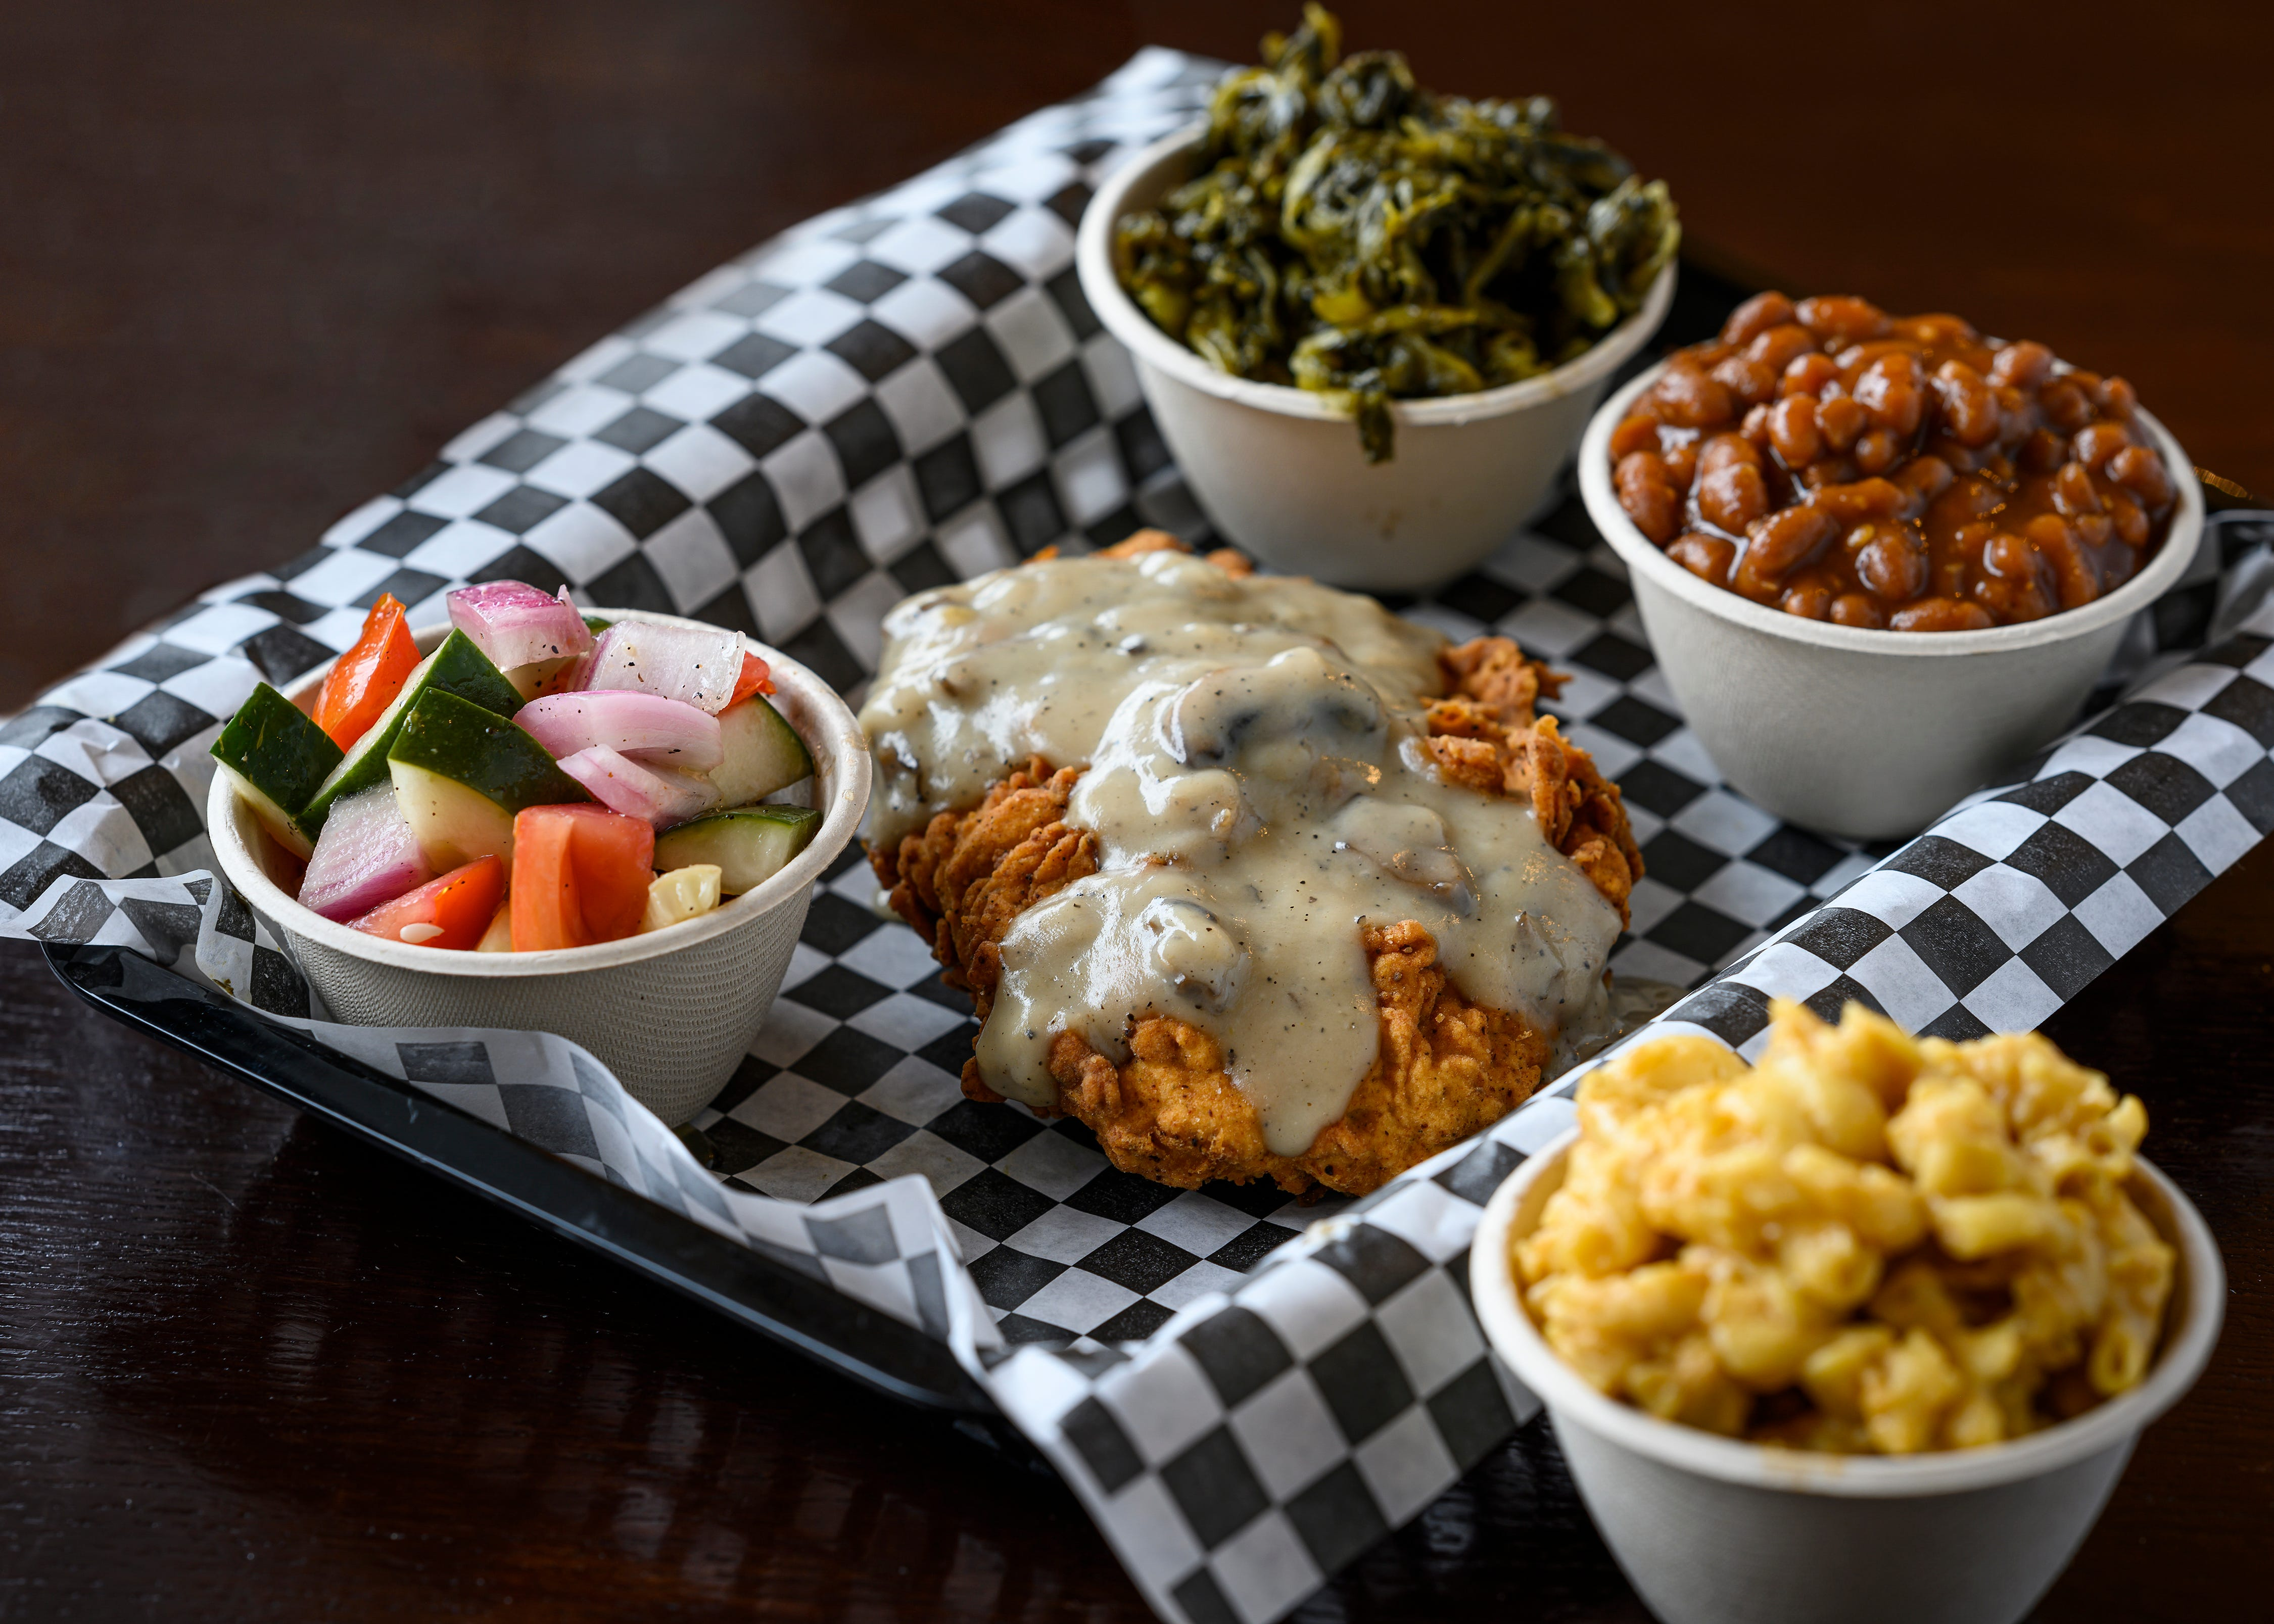 At the Southern V in Nashville, the vegan Chick'n Fried Chick'n with mushroom gravy served with tomato and cucumber salad, turnip greens, baked beans, and mac 'n' cheeze. (Courtesy of Southern V)